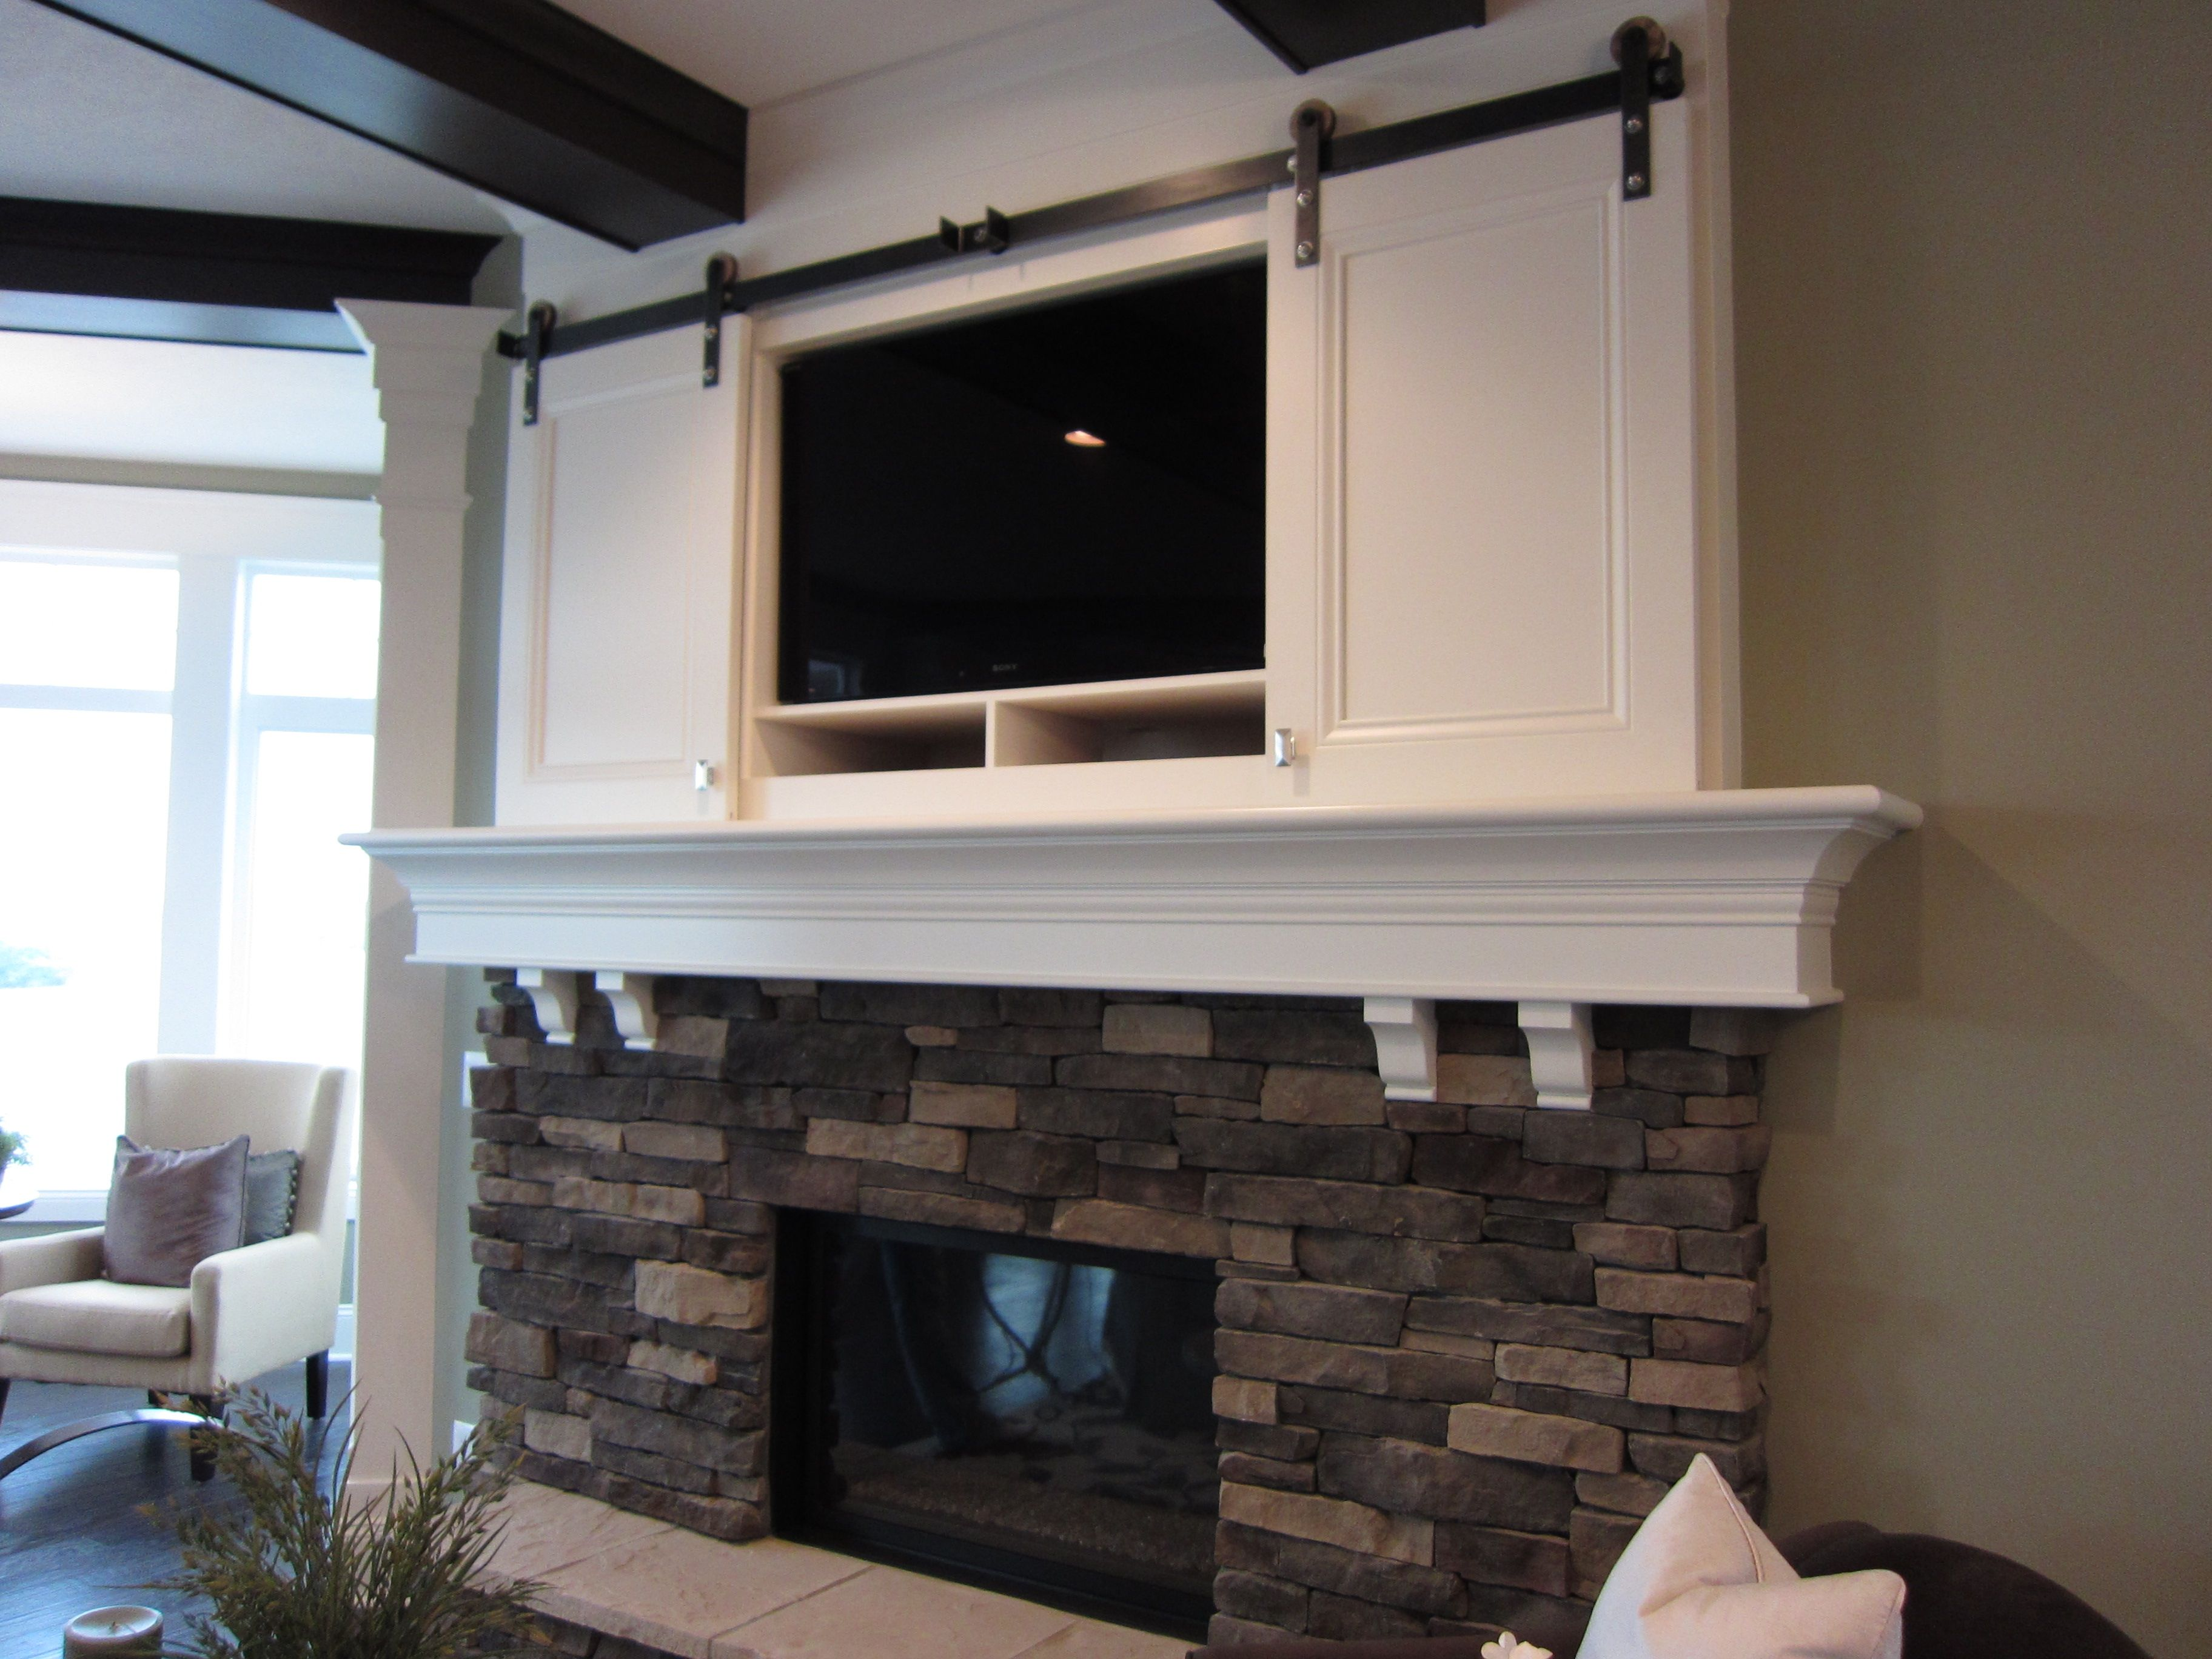 Tv Above Fireplace too High Fresh Fireplace Tv Mantel Ideas Best 25 Tv Above Fireplace Ideas